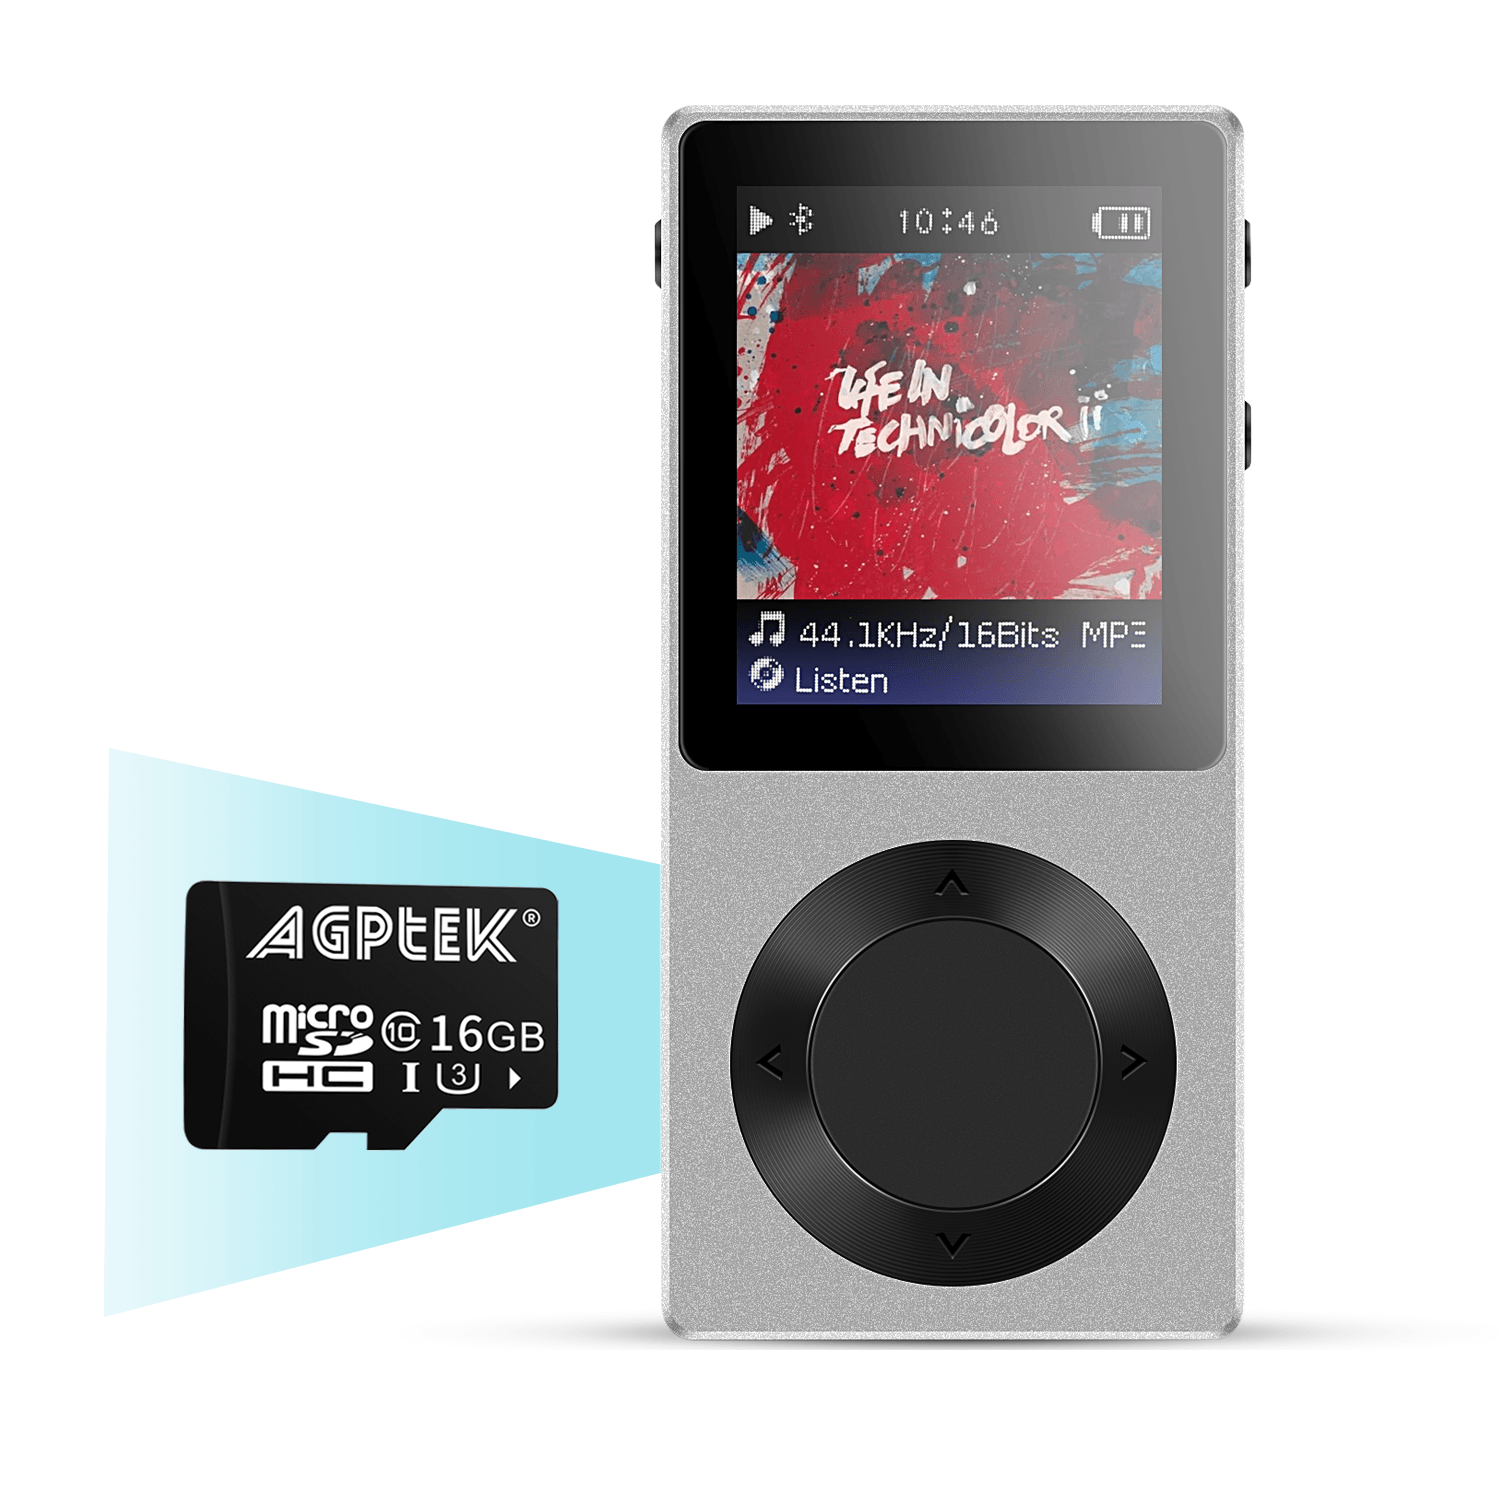 AGPTEK ROCKER Bluetooth 4.0 MP3 Player with 16GB SD card, Lossless Music Player for Audiophile(up to 256GB), Sliver